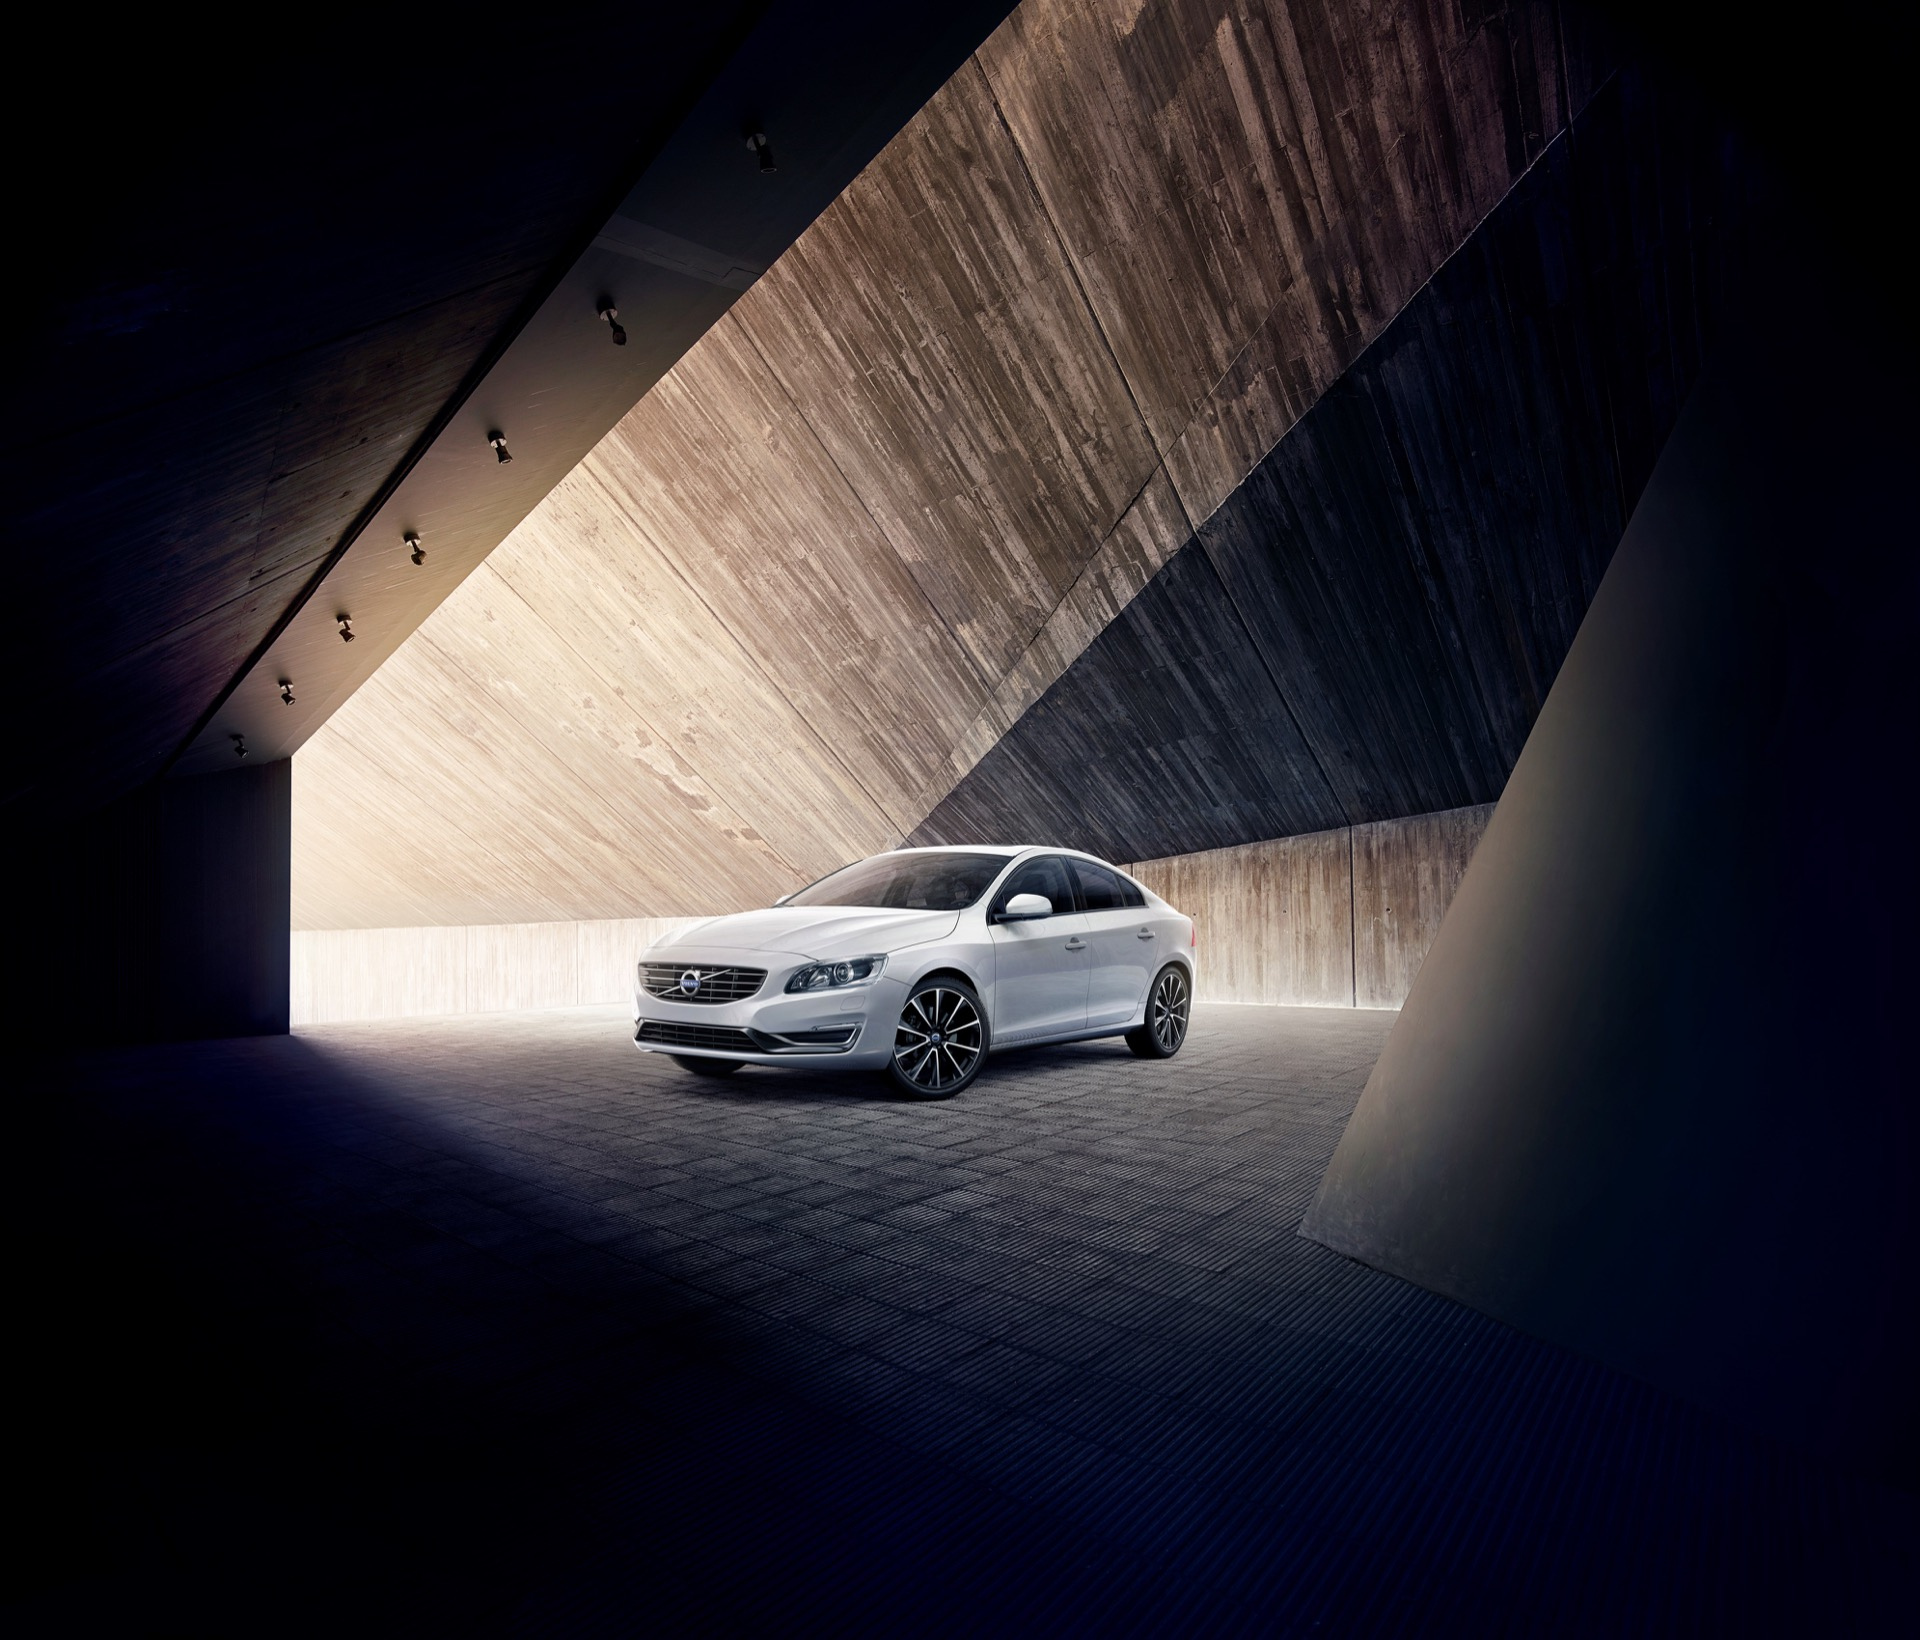 Volvo S60 Edition -  2016, 2017, 2017 S60, 2018, 2018 S60, Exterior, Images, S60, Volvo